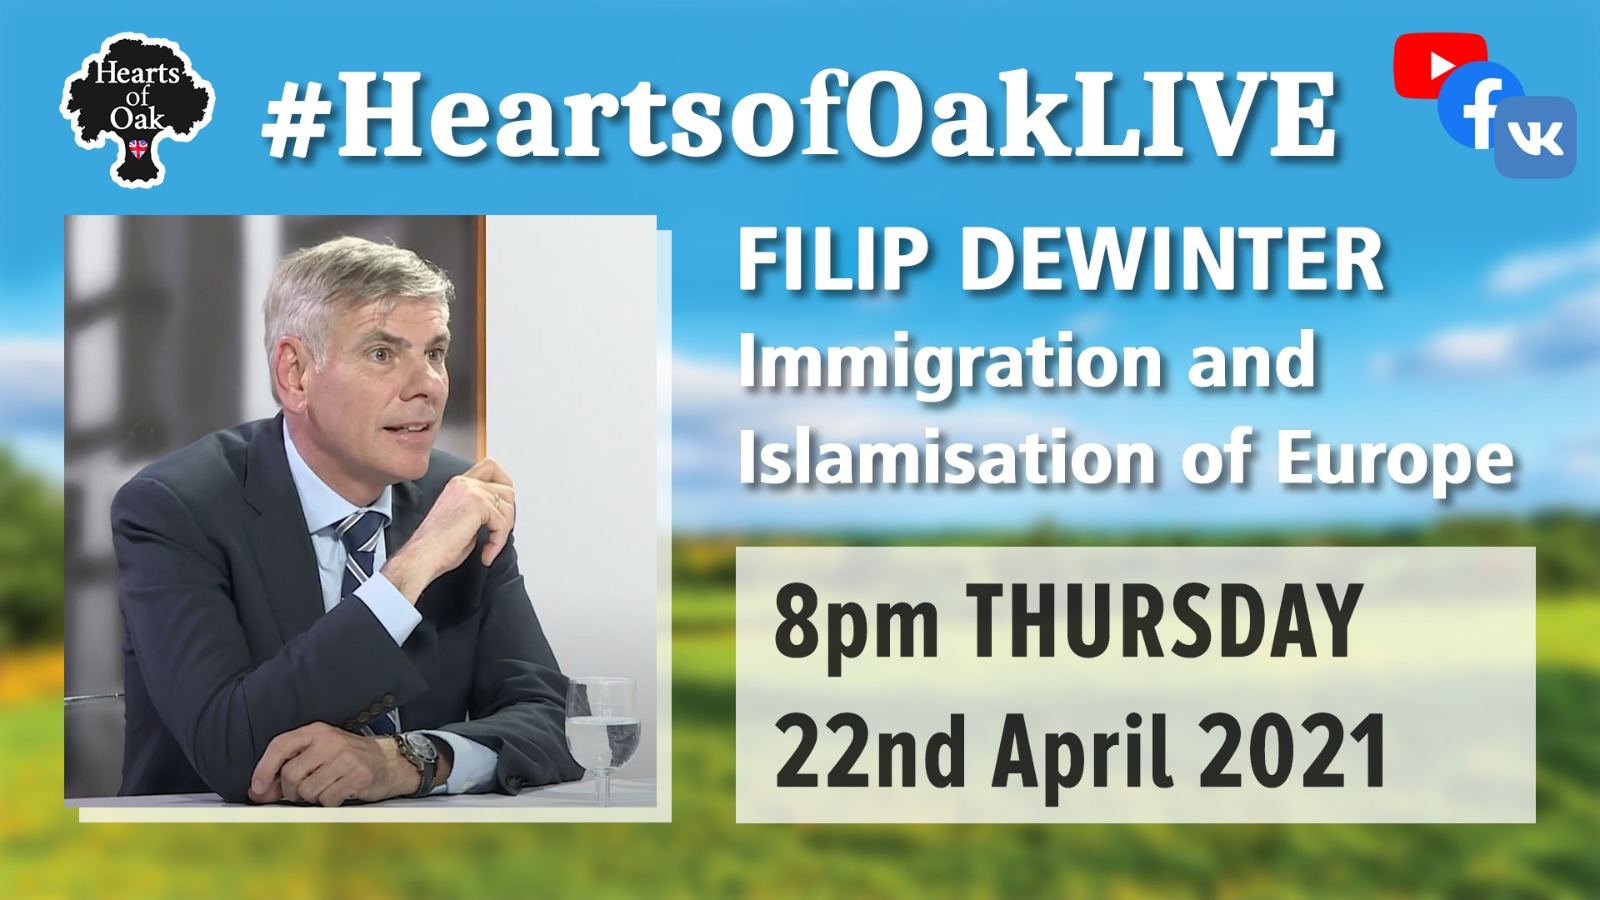 Filip Dewinter: Immigration and Islamisation of Europe